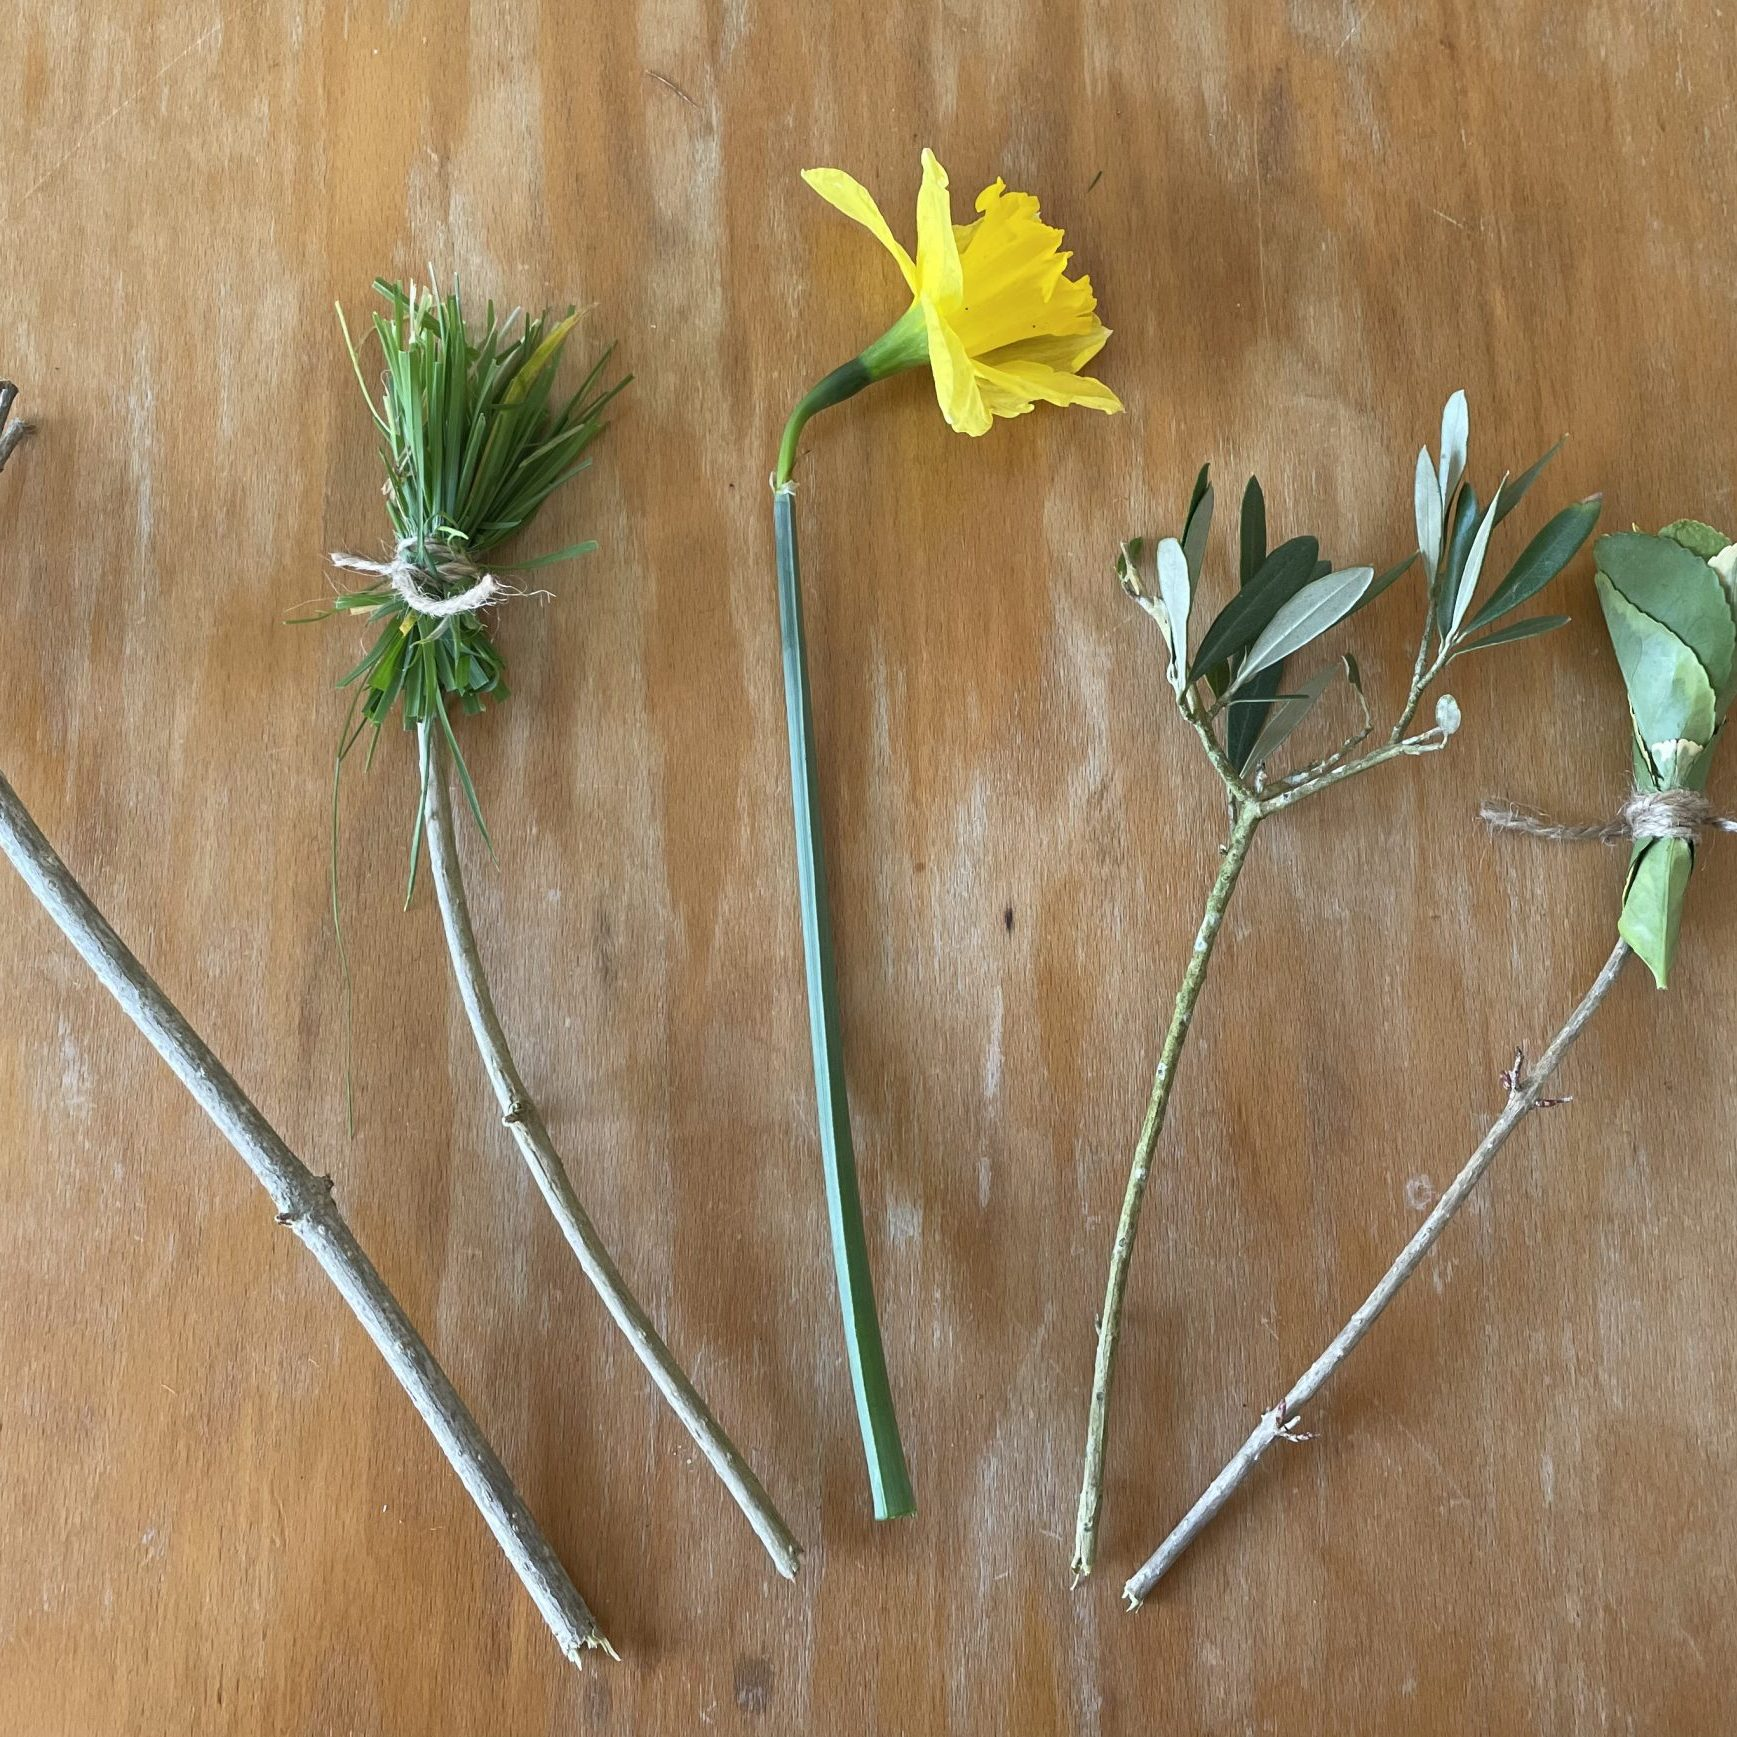 On a wooden table are paintbrushes made out of sticks, grass, leaves and a daffodil tied with twine